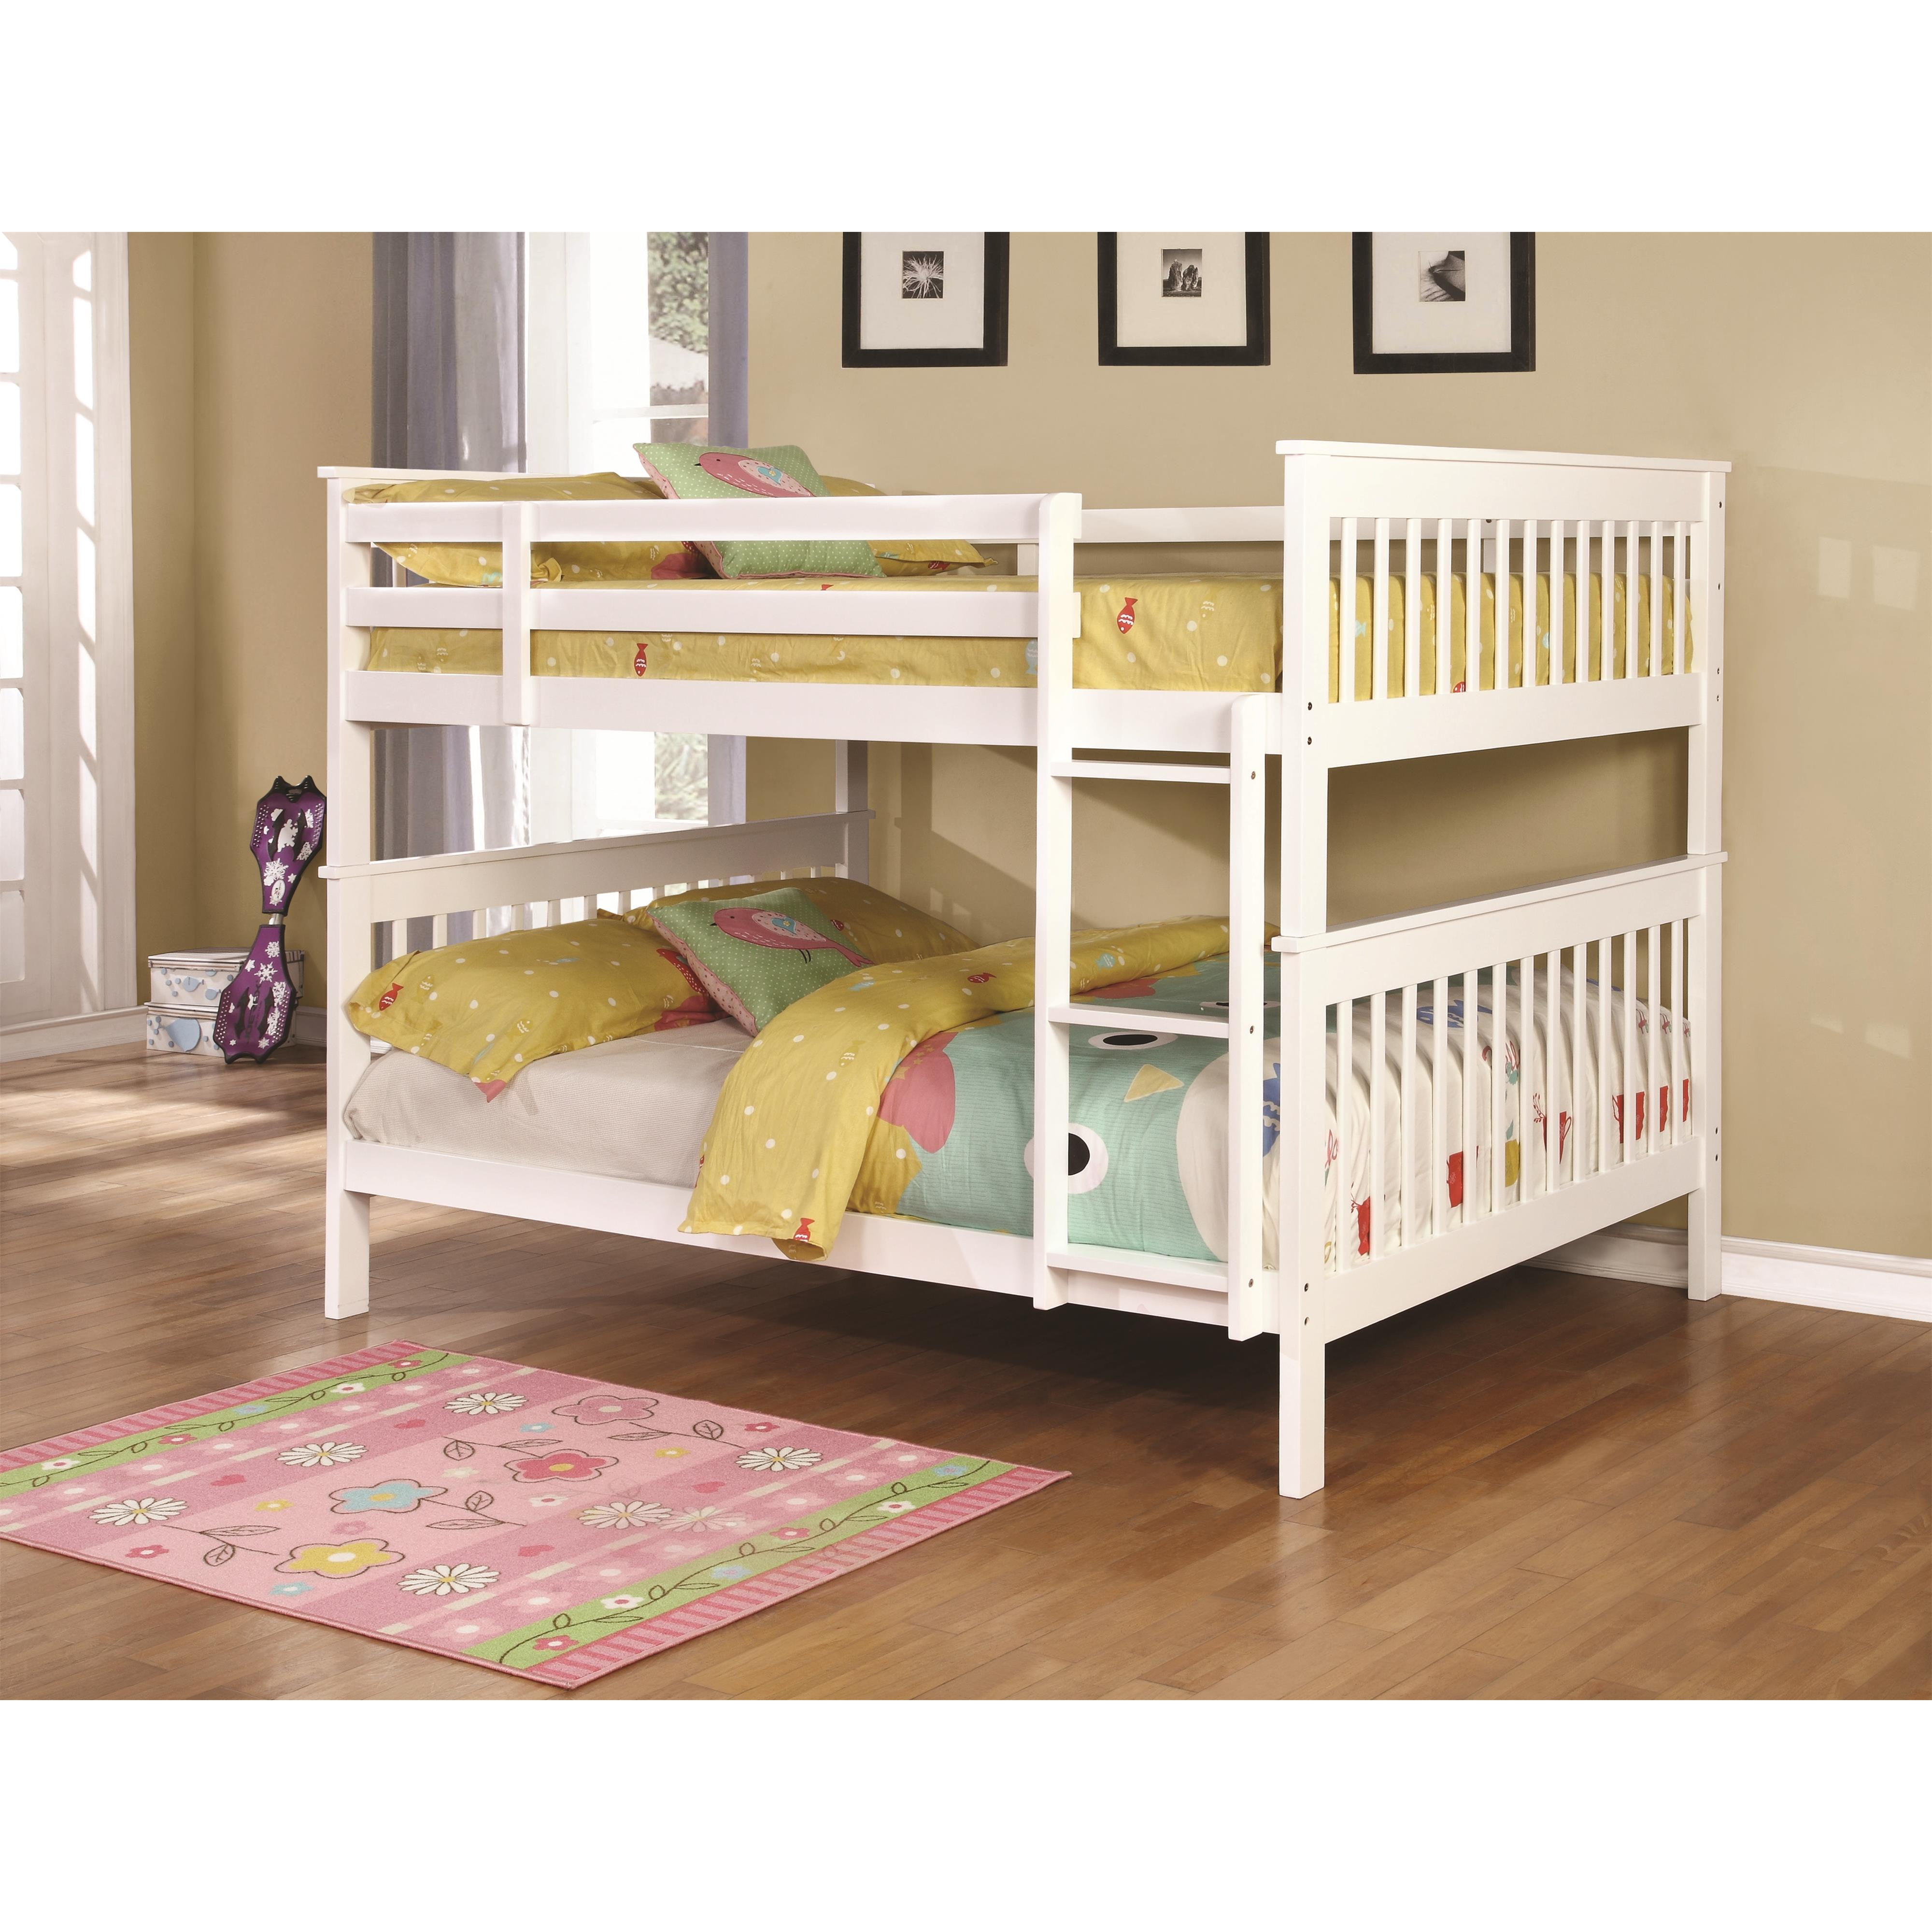 Bunks Full over Full Bunk Bed by Coaster at Standard Furniture